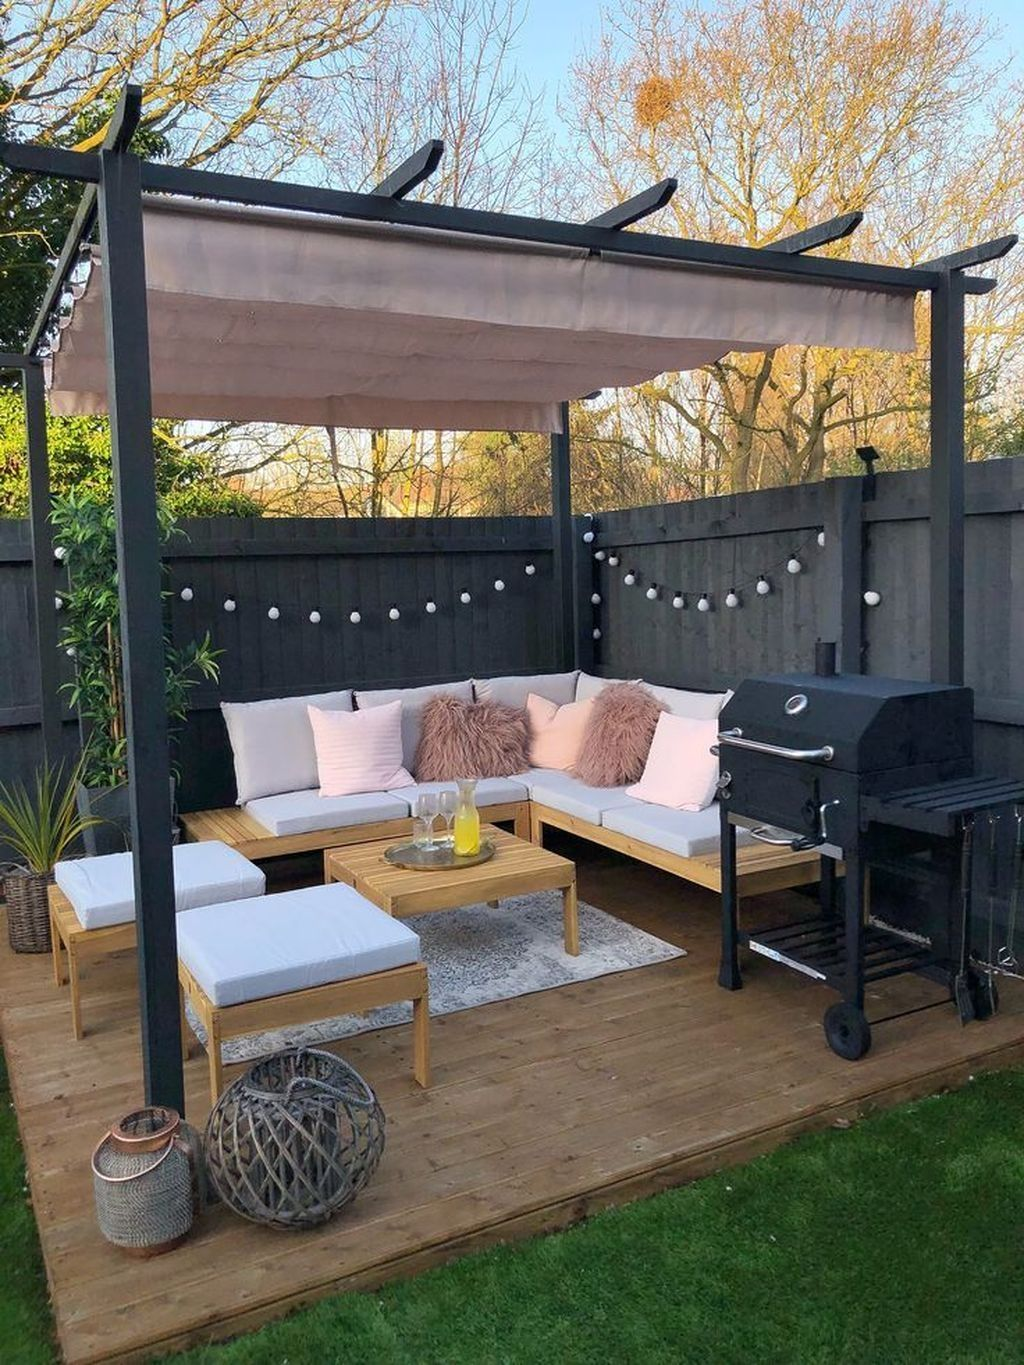 20 Magnificent Patio Furniture Ideas For Your Outdoor Garden In 2020 Backyard Seating Area Garden Sitting Areas Backyard Seating